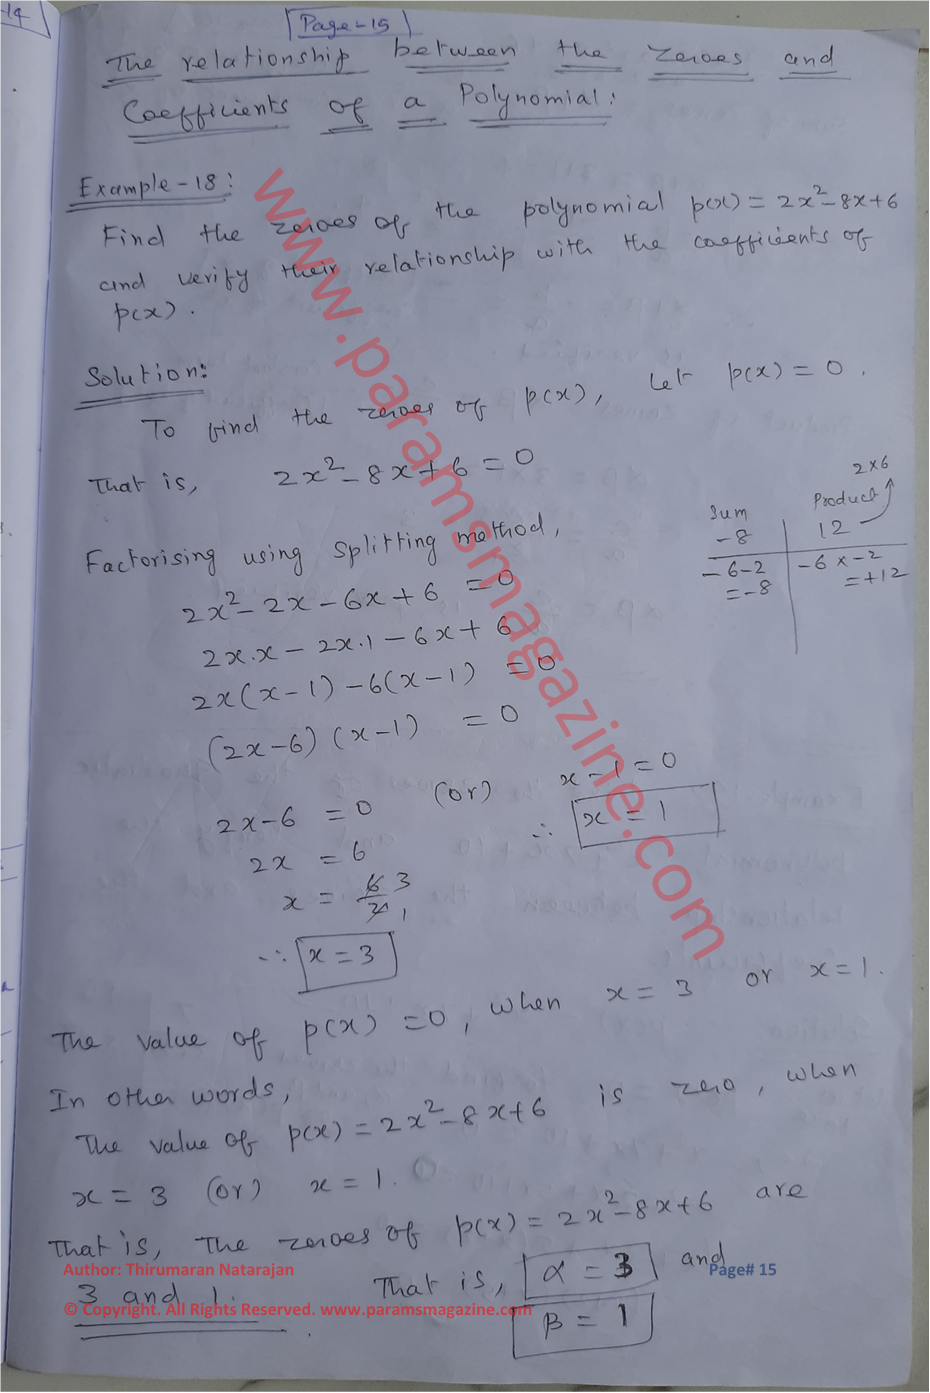 Class-10 - Polynomials - Notes - Page-15